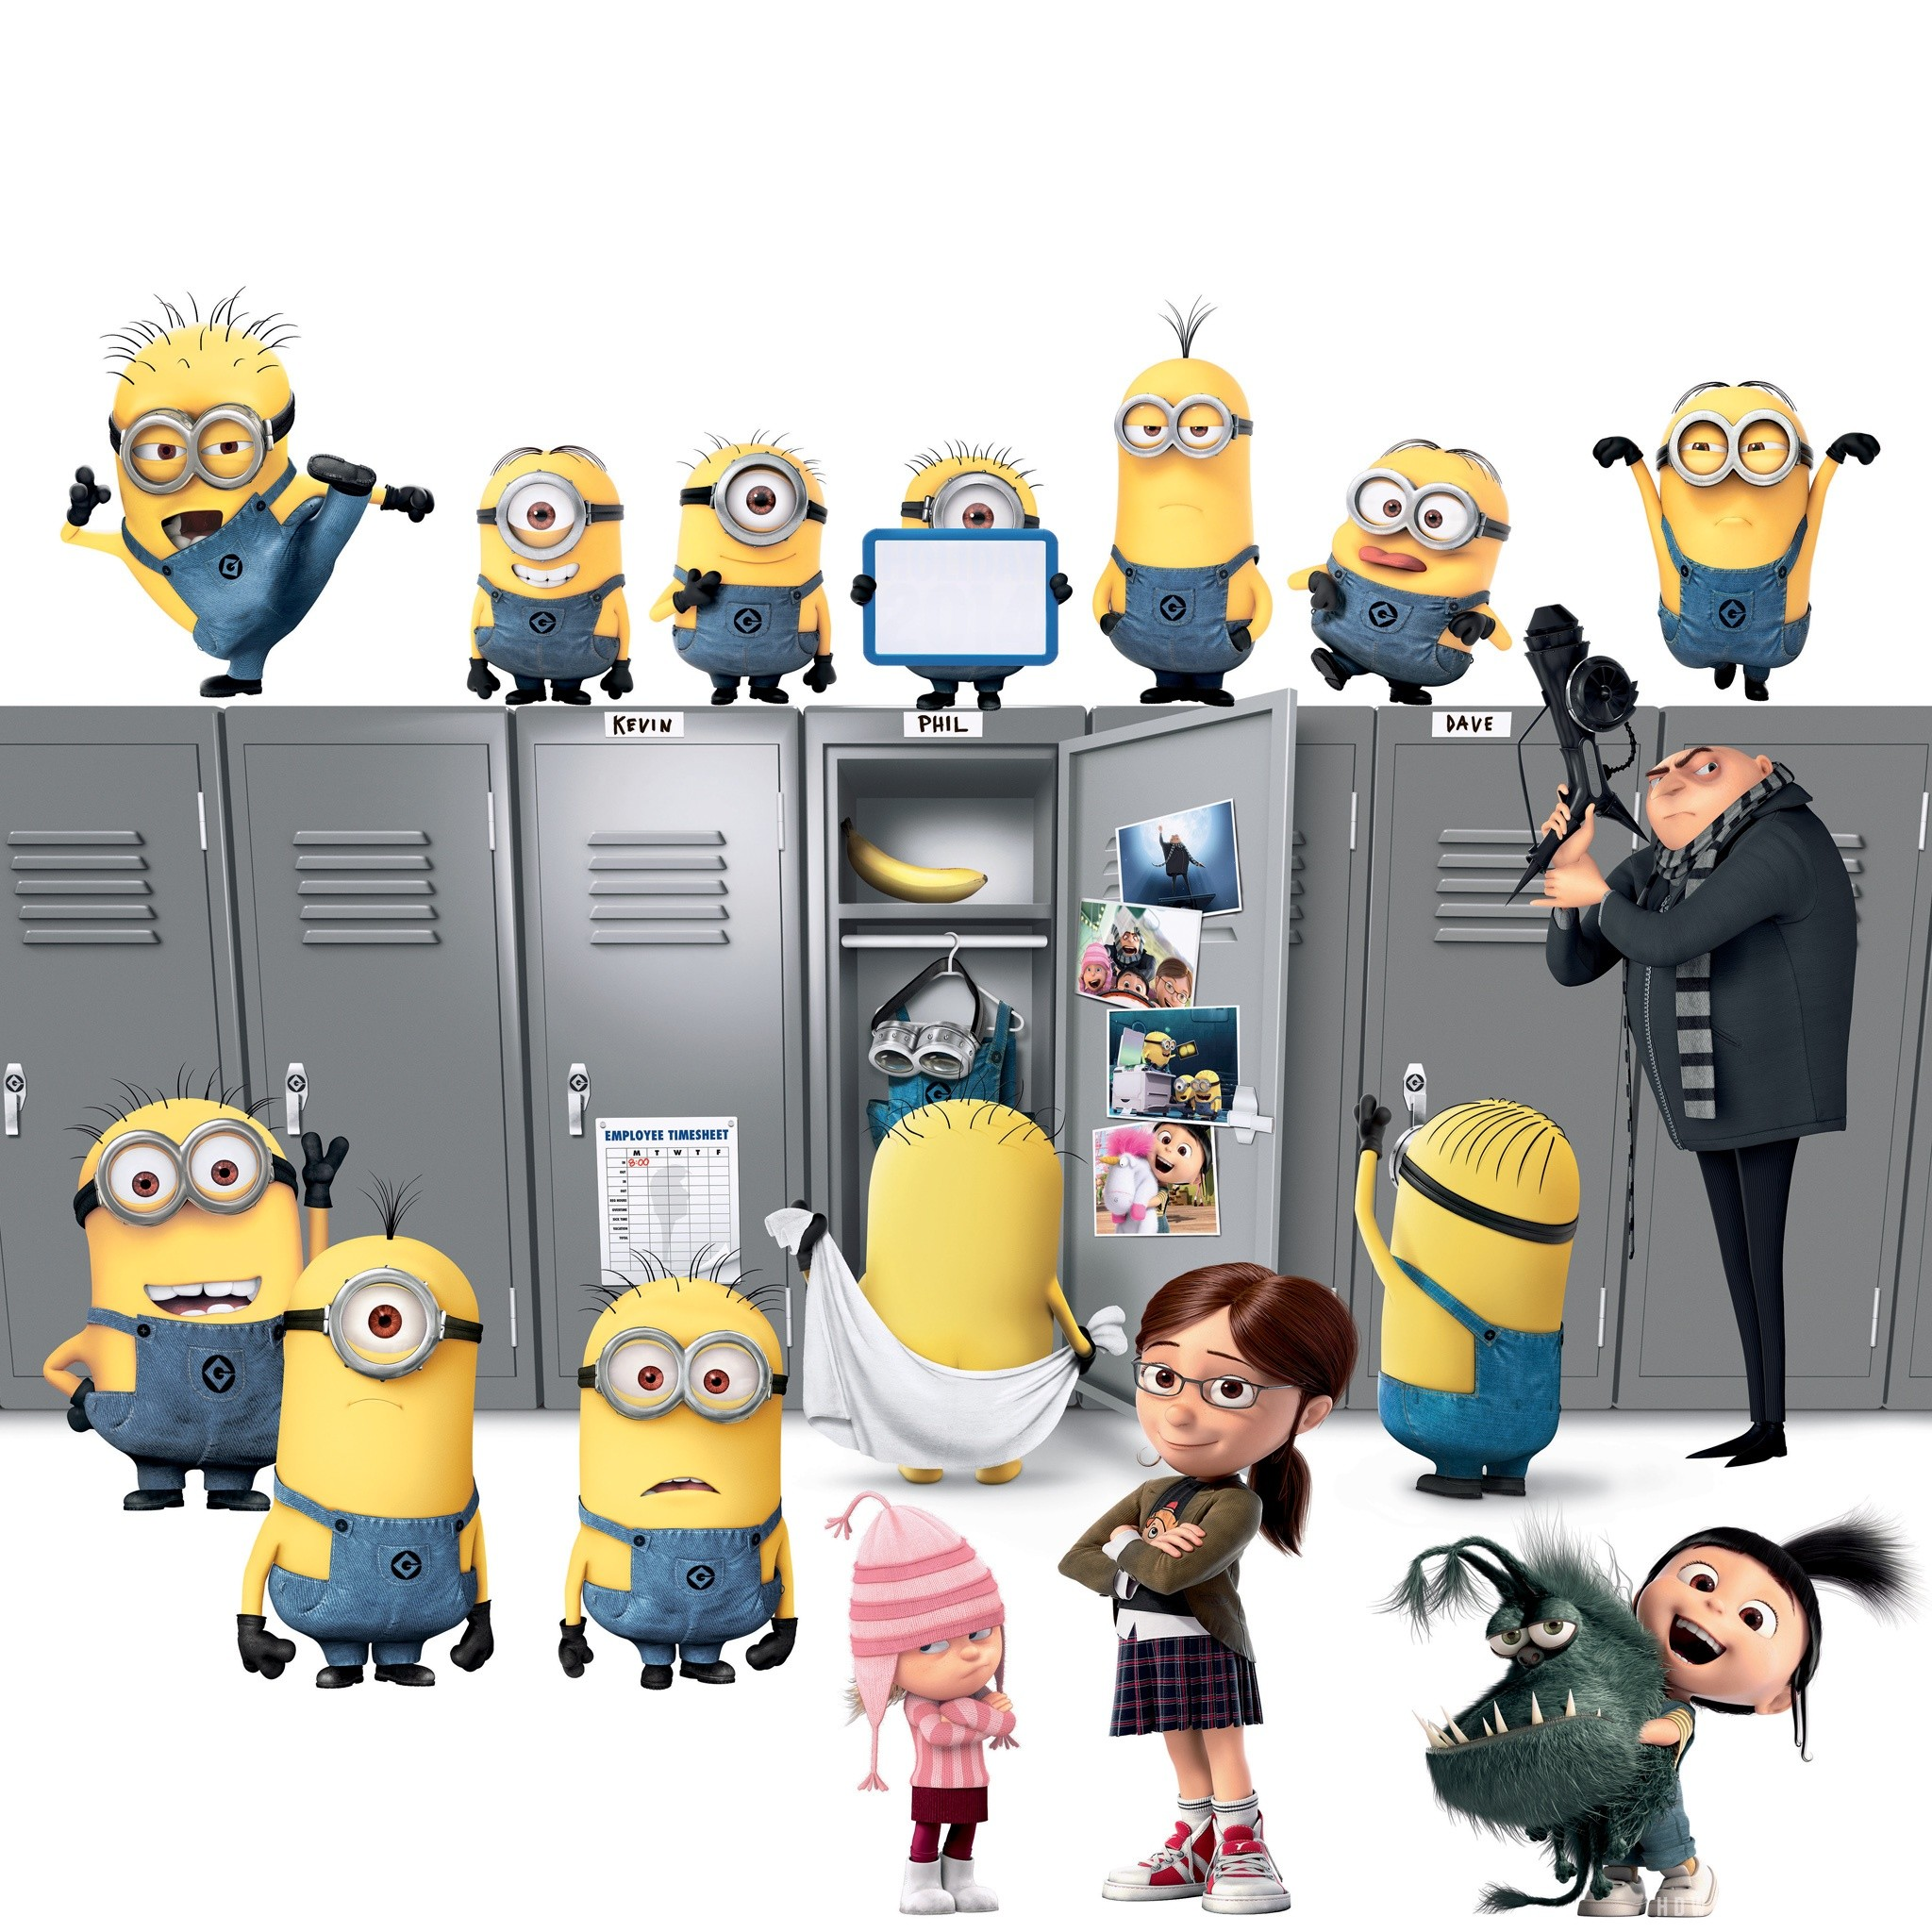 2048x2048 minions - Despicable Me Minions Wallpaper - Fanpop